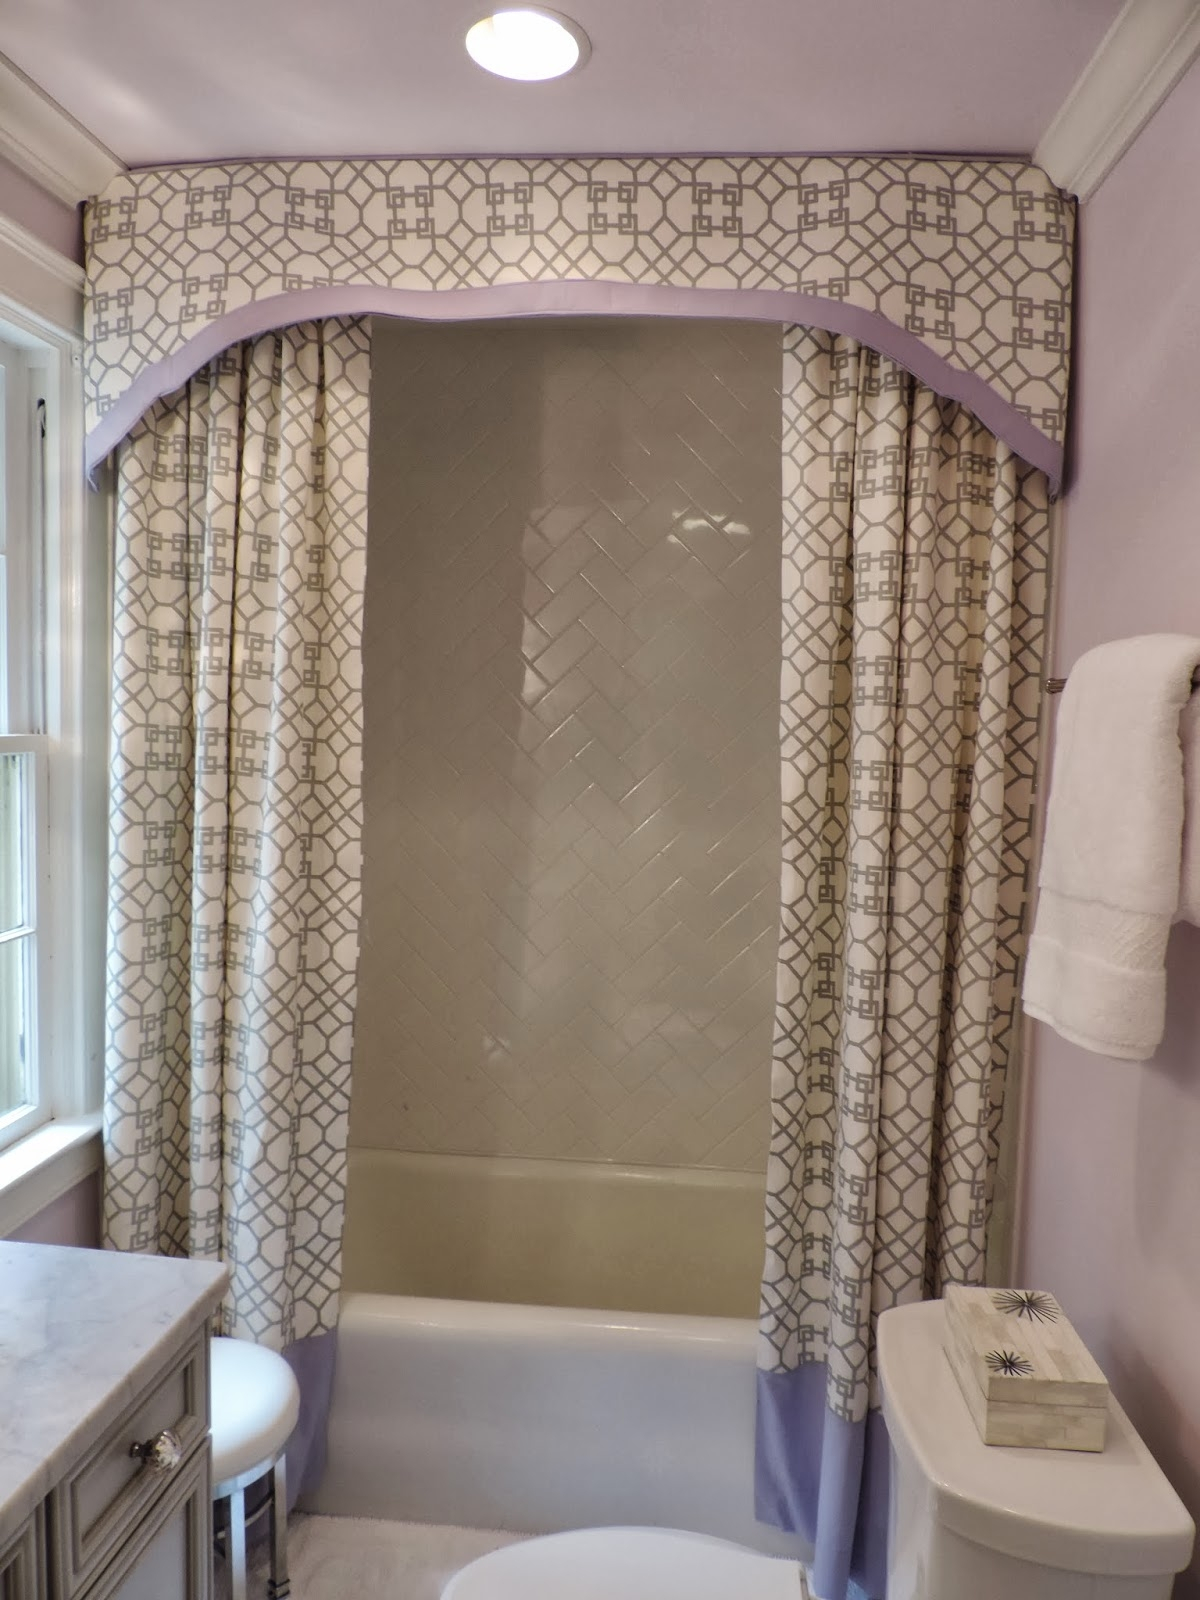 Shower Curtain Valance Ideas Shower Curtain Ideas in size 1200 X 1600